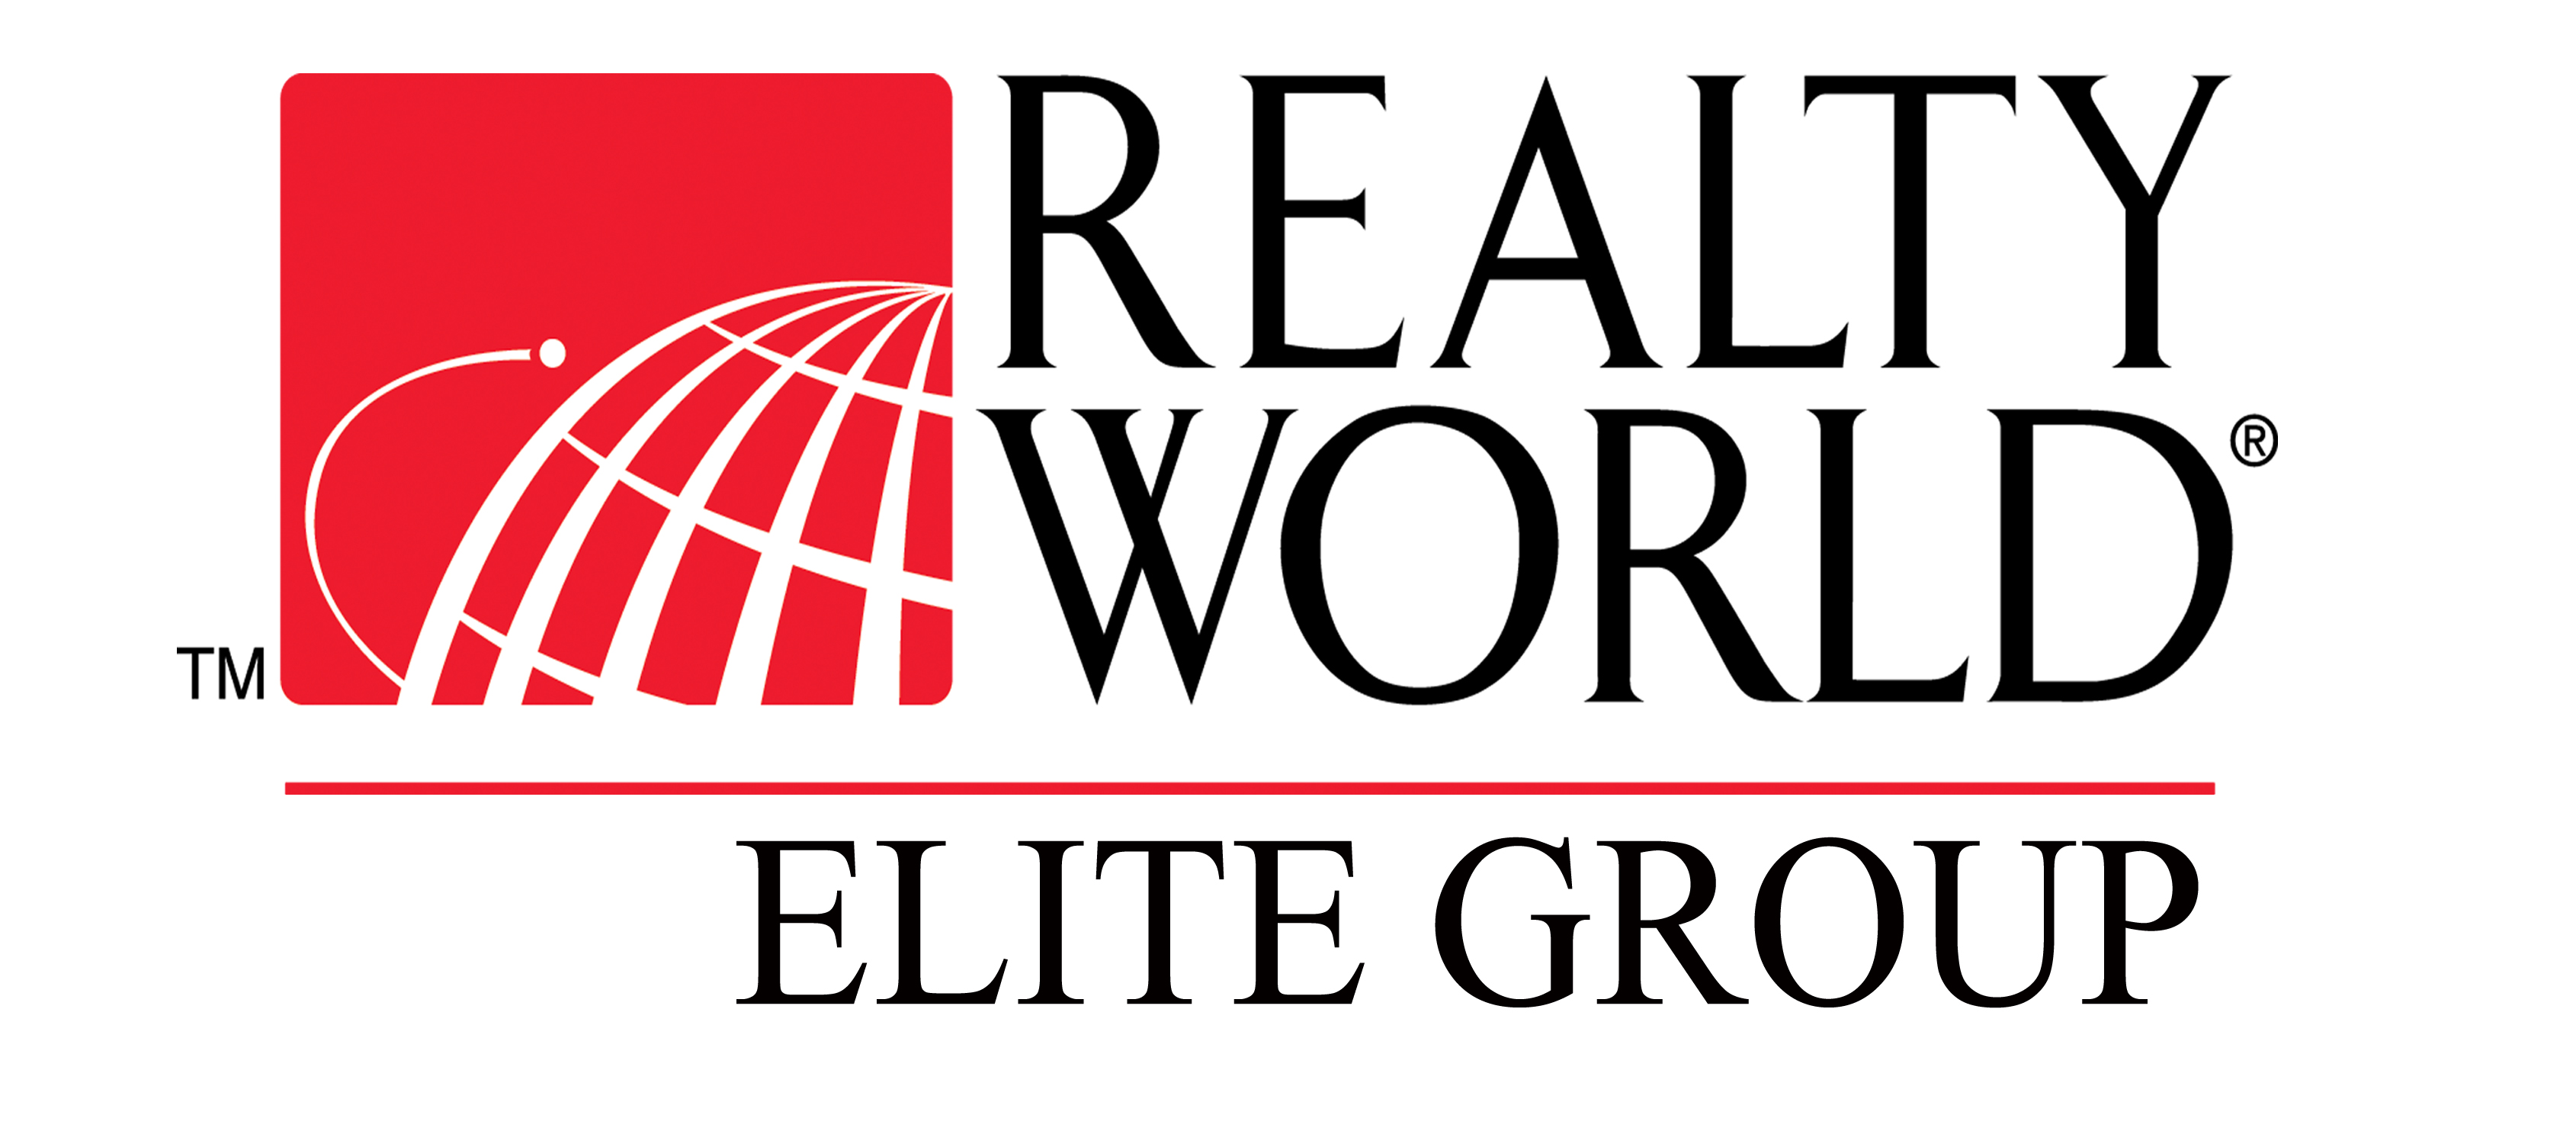 Realty World Elite Group